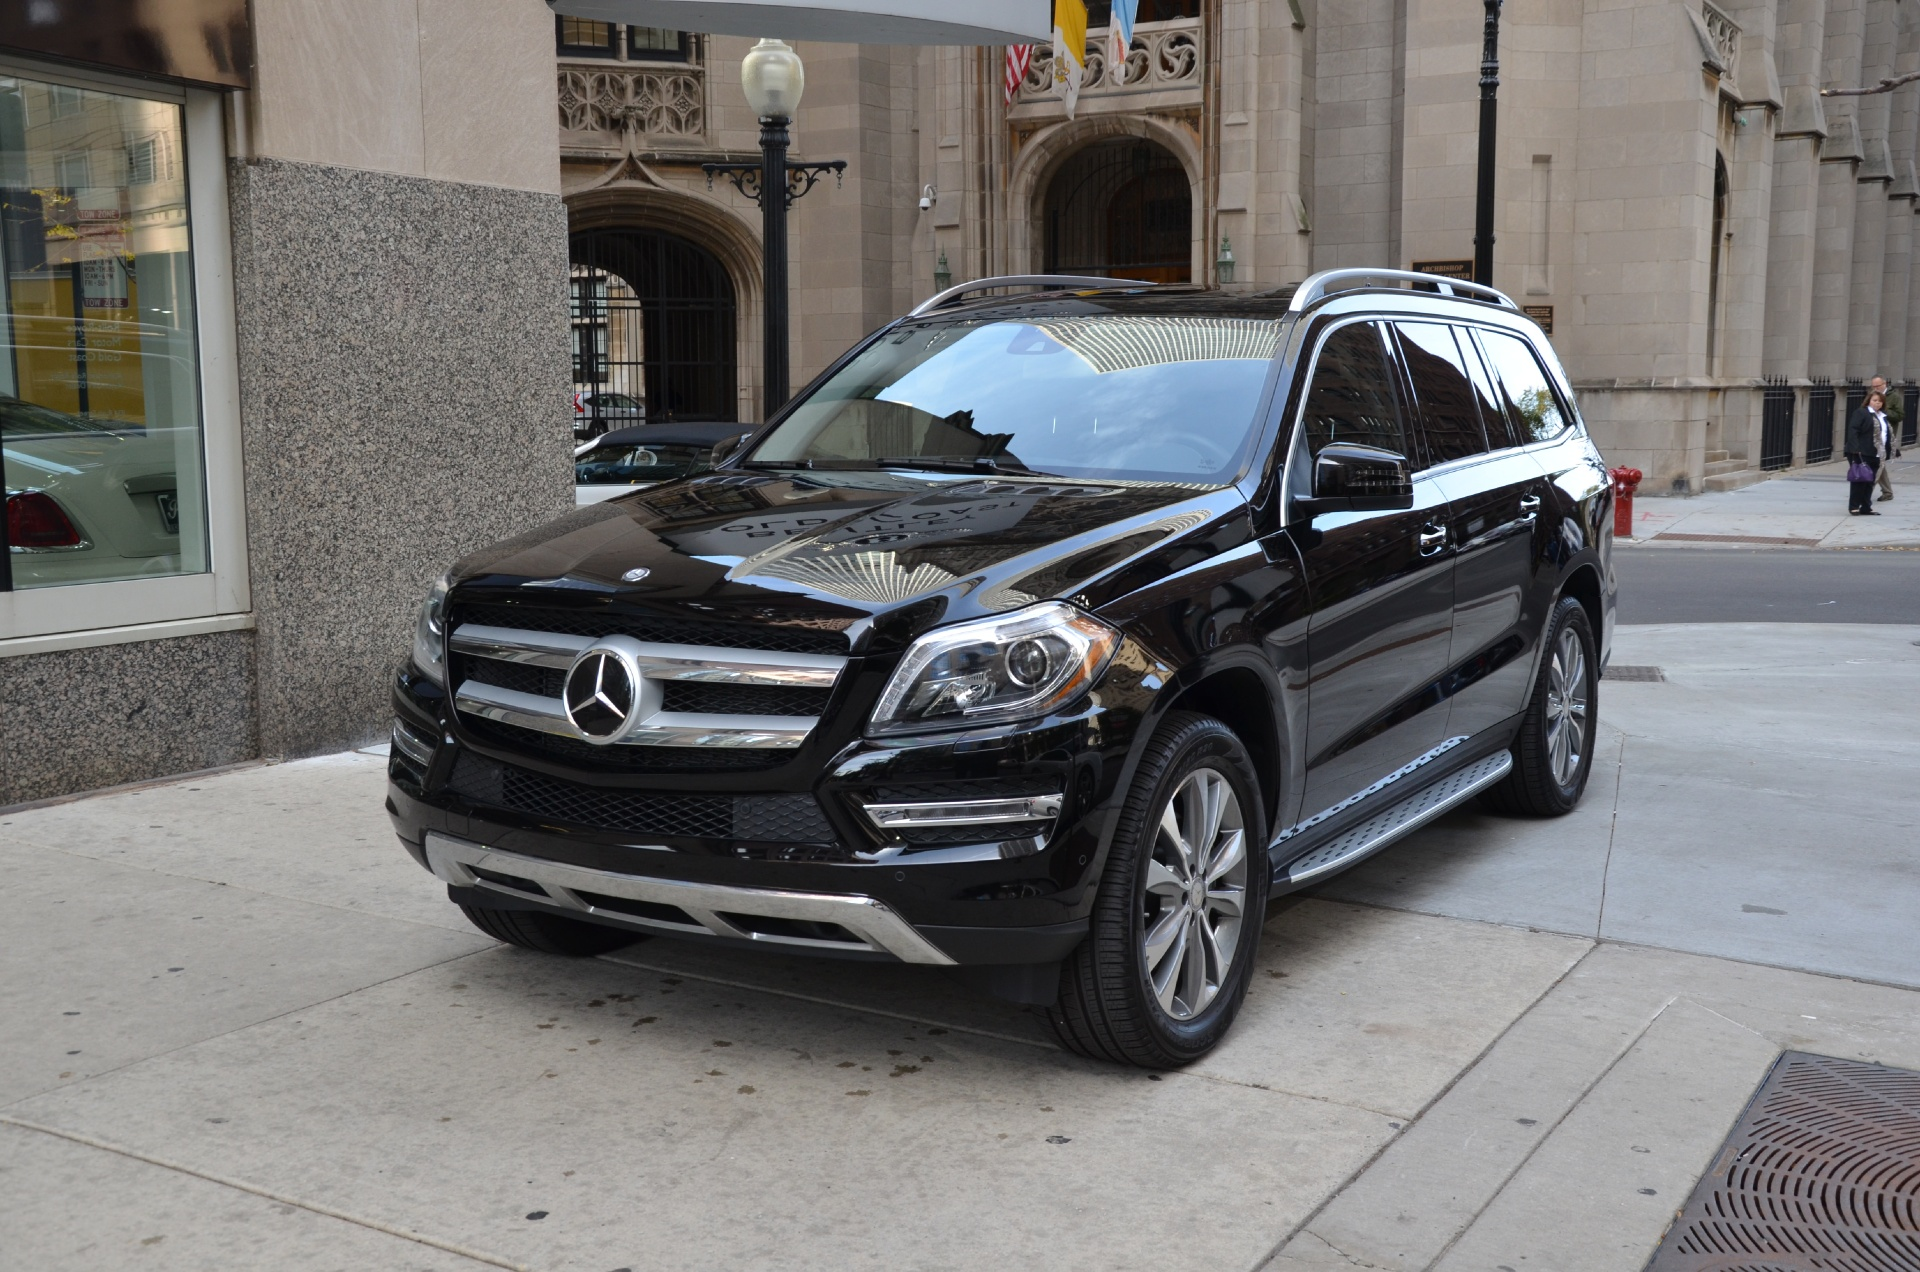 2014 mercedes benz gl class gl450 used bentley used for 2014 mercedes benz gl450